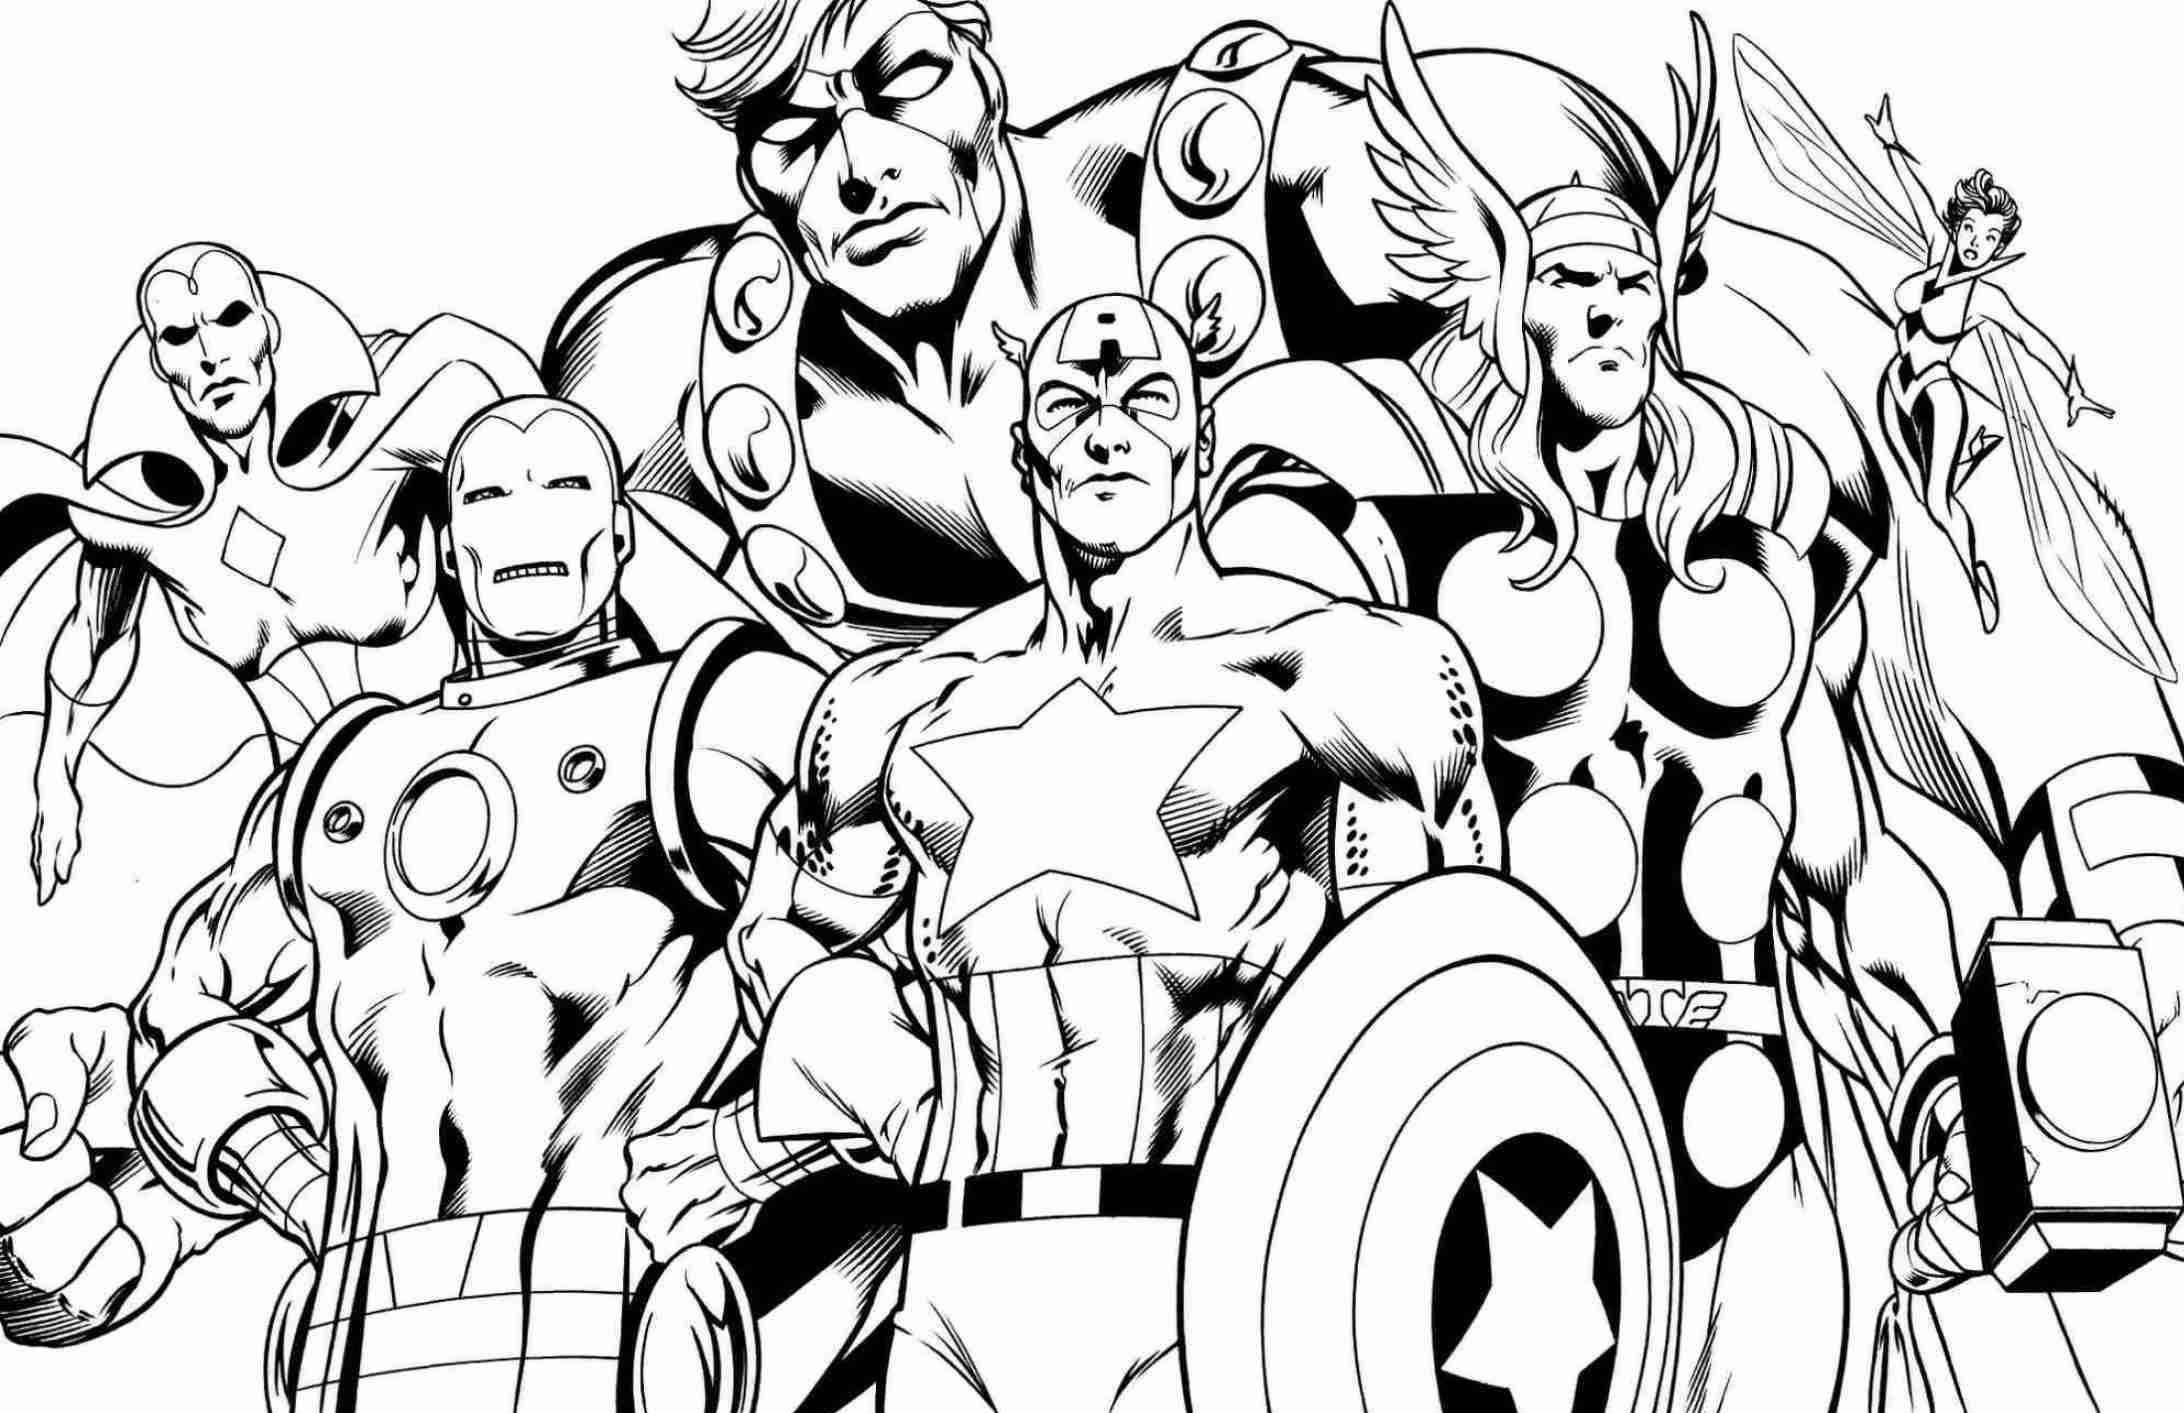 coloring avengers printables the avengers coloring pages to download and print for free coloring avengers printables